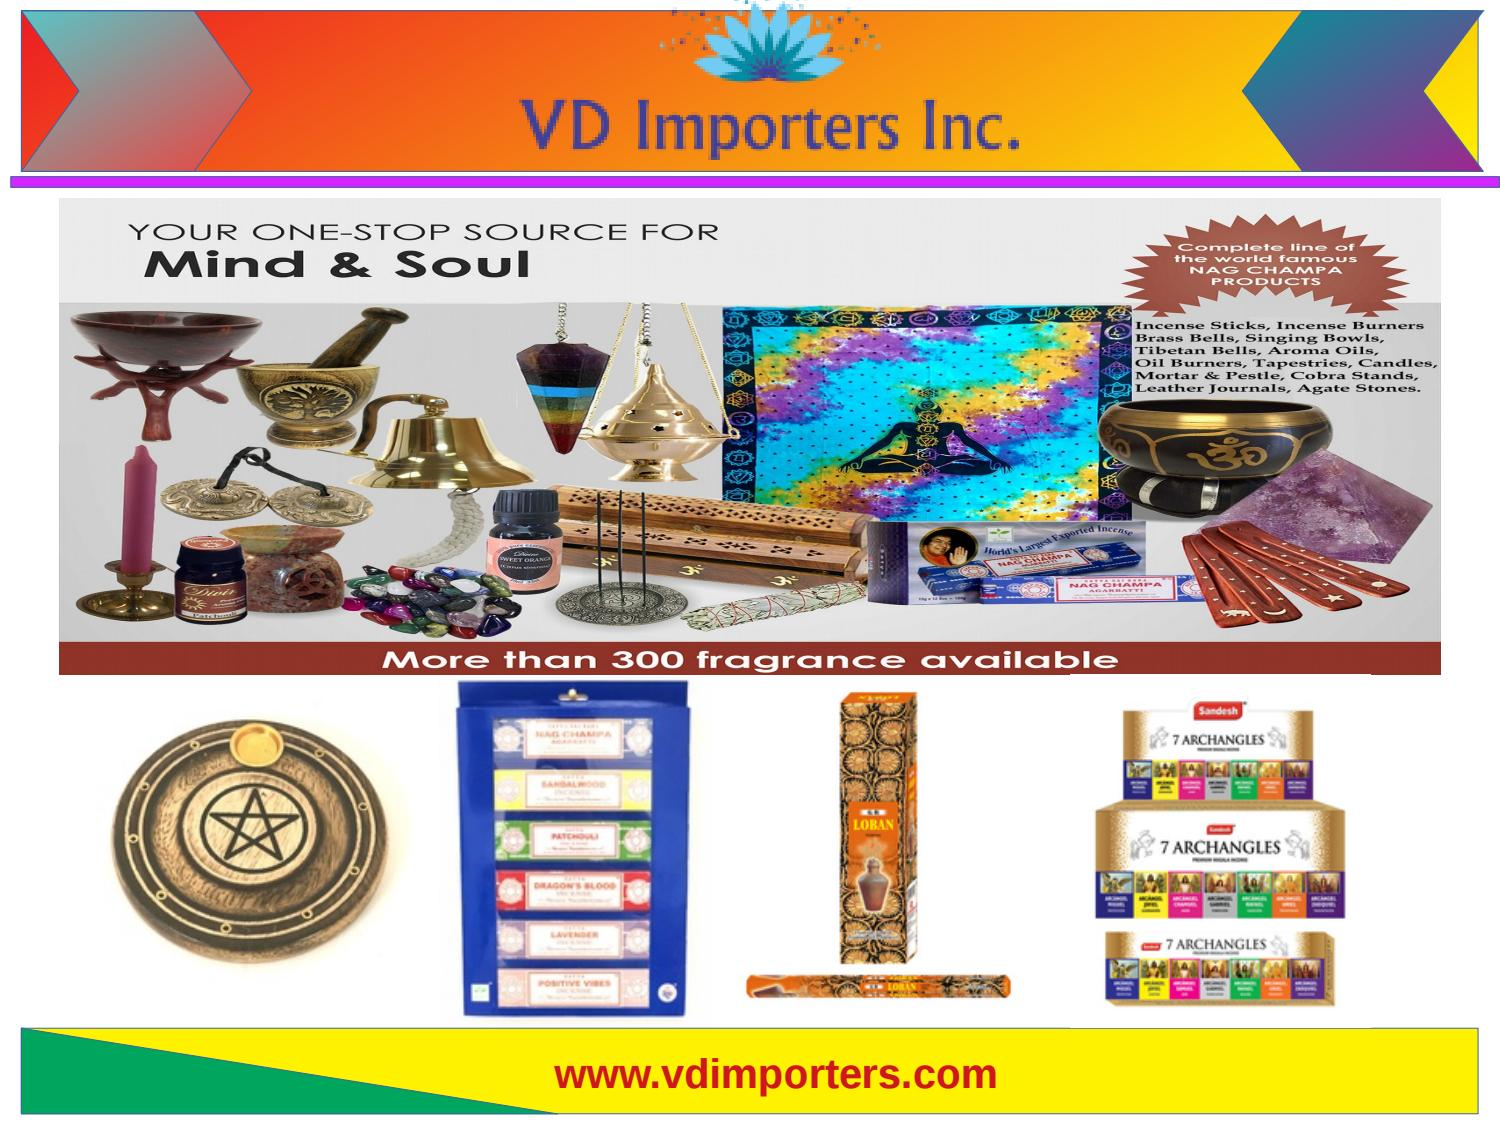 Metaphysical Products Wholesale | Vdimporters com by VD